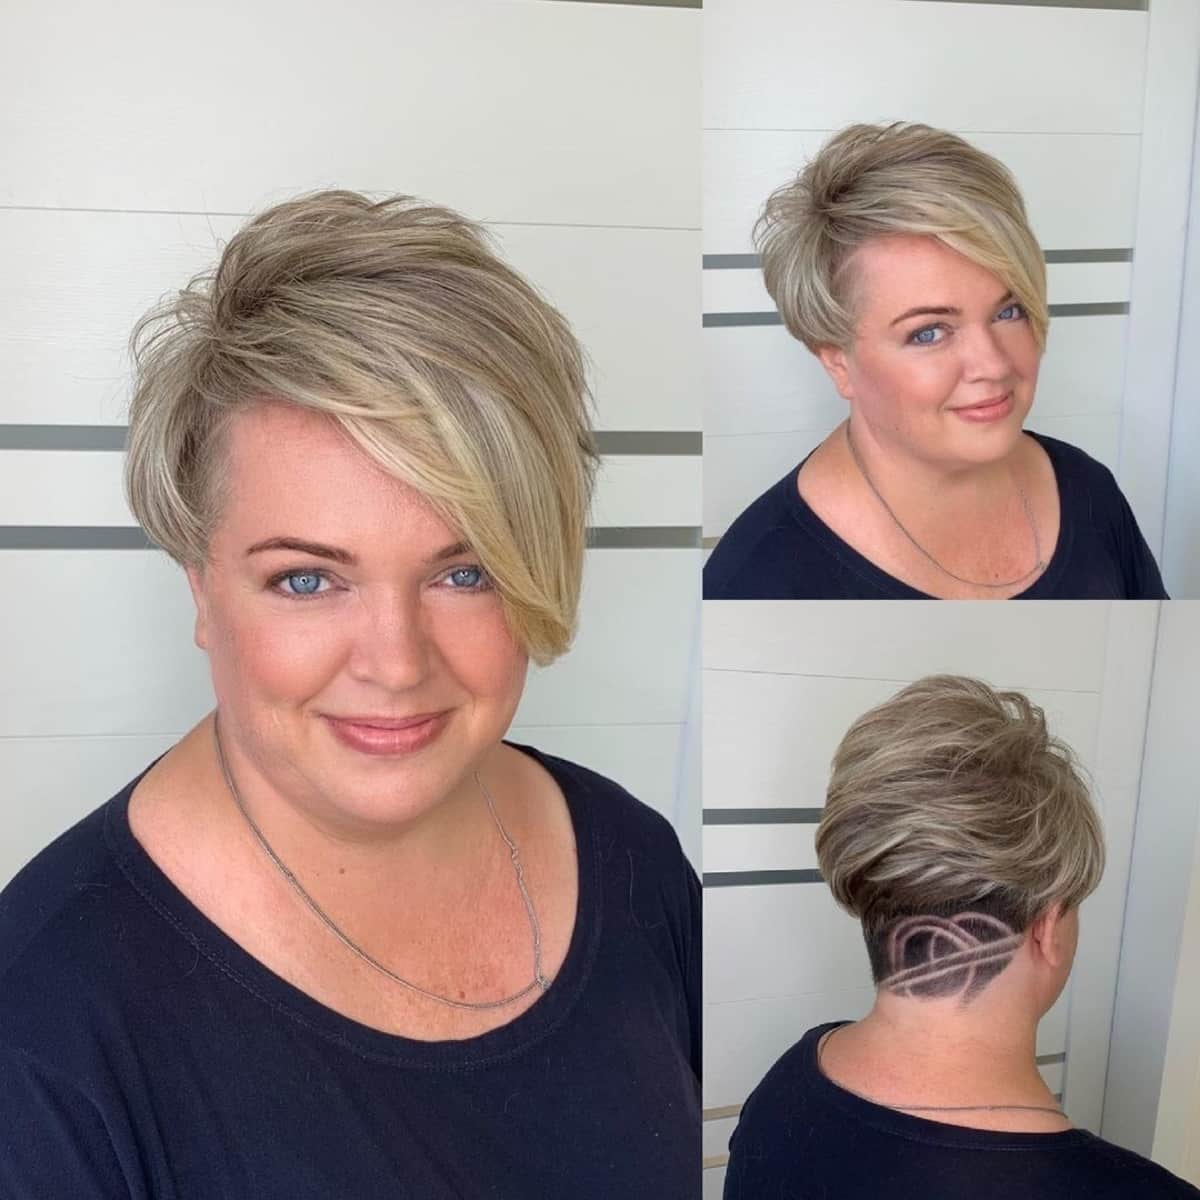 26 Most Flattering Ways to Get a Pixie Cut for a Round Face